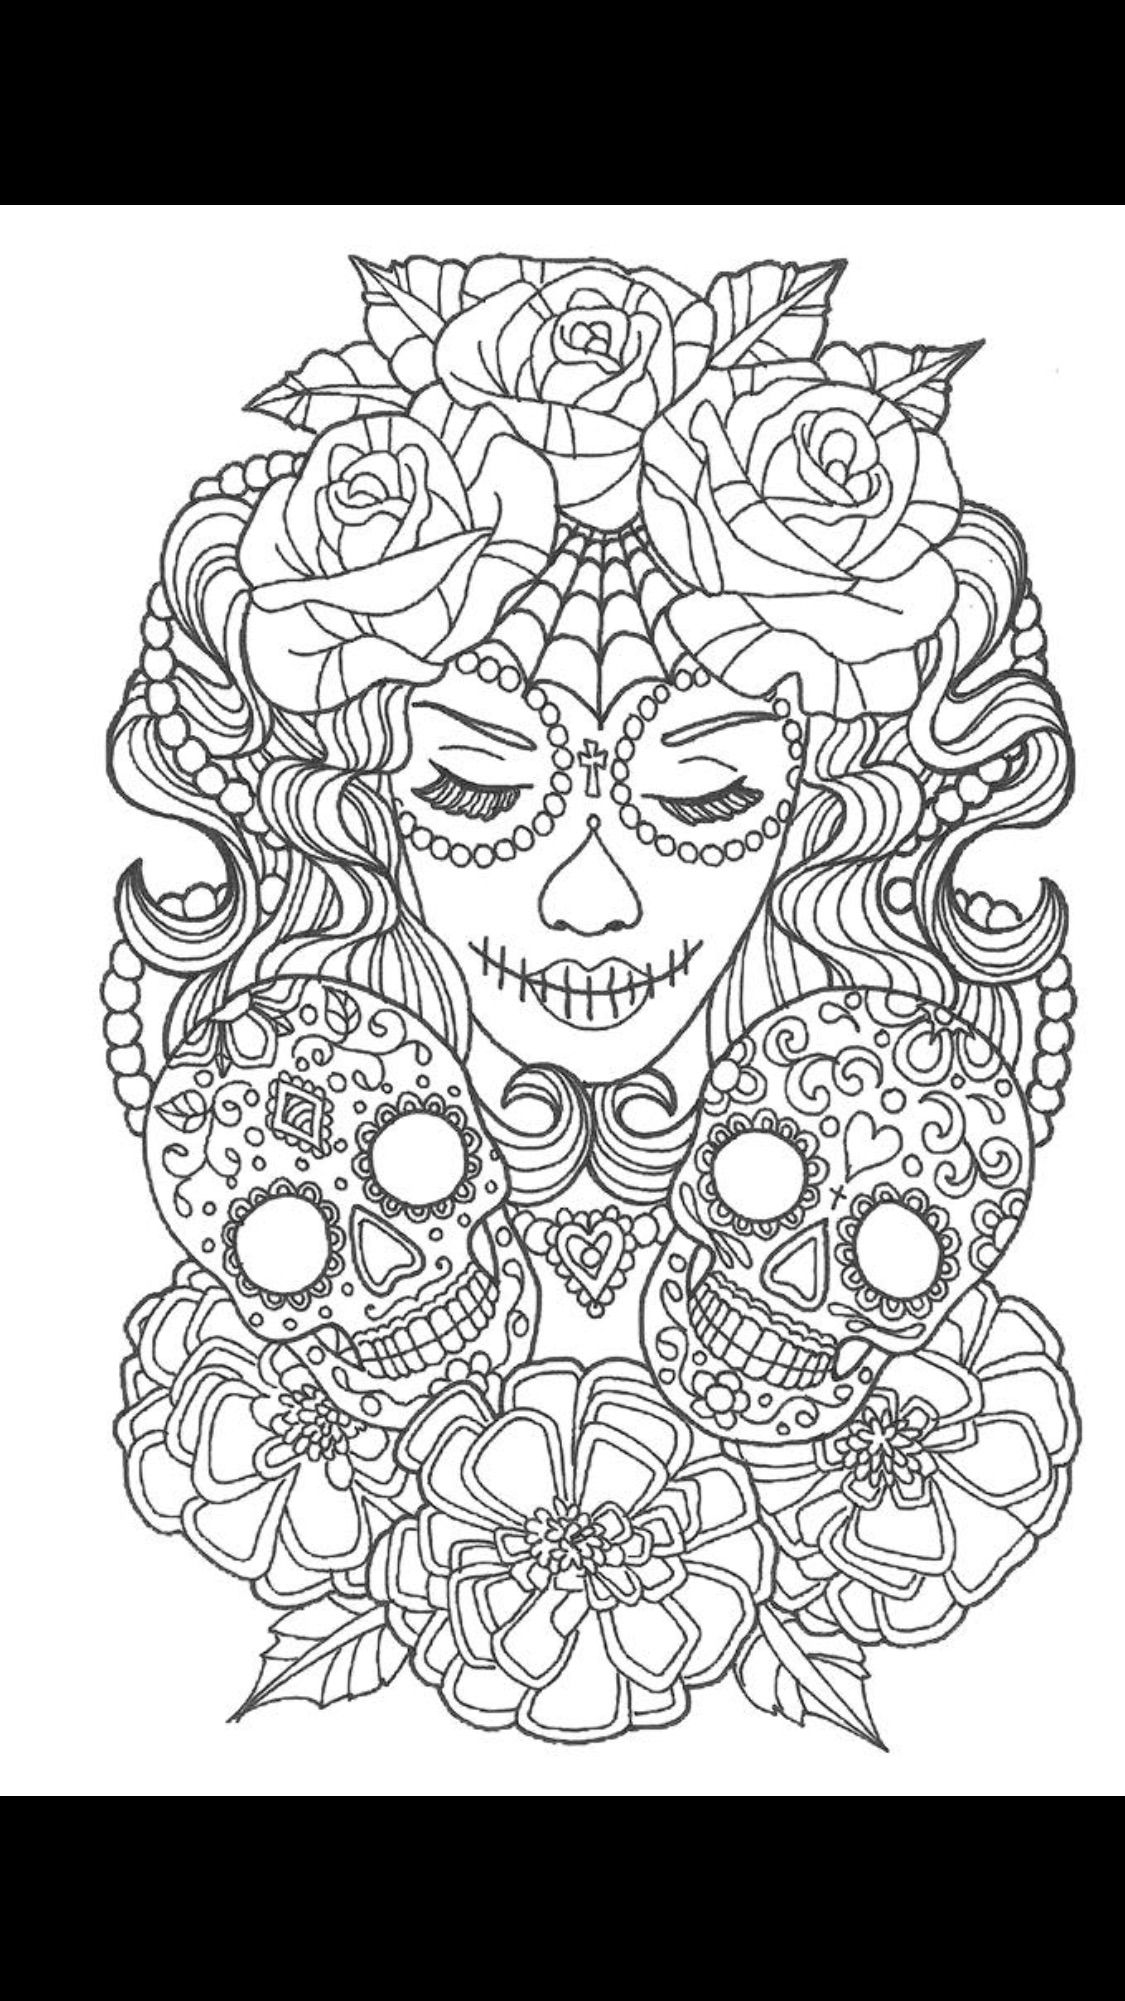 Skull Coloring Pages By Chelsea On Tattoos Piercings Free